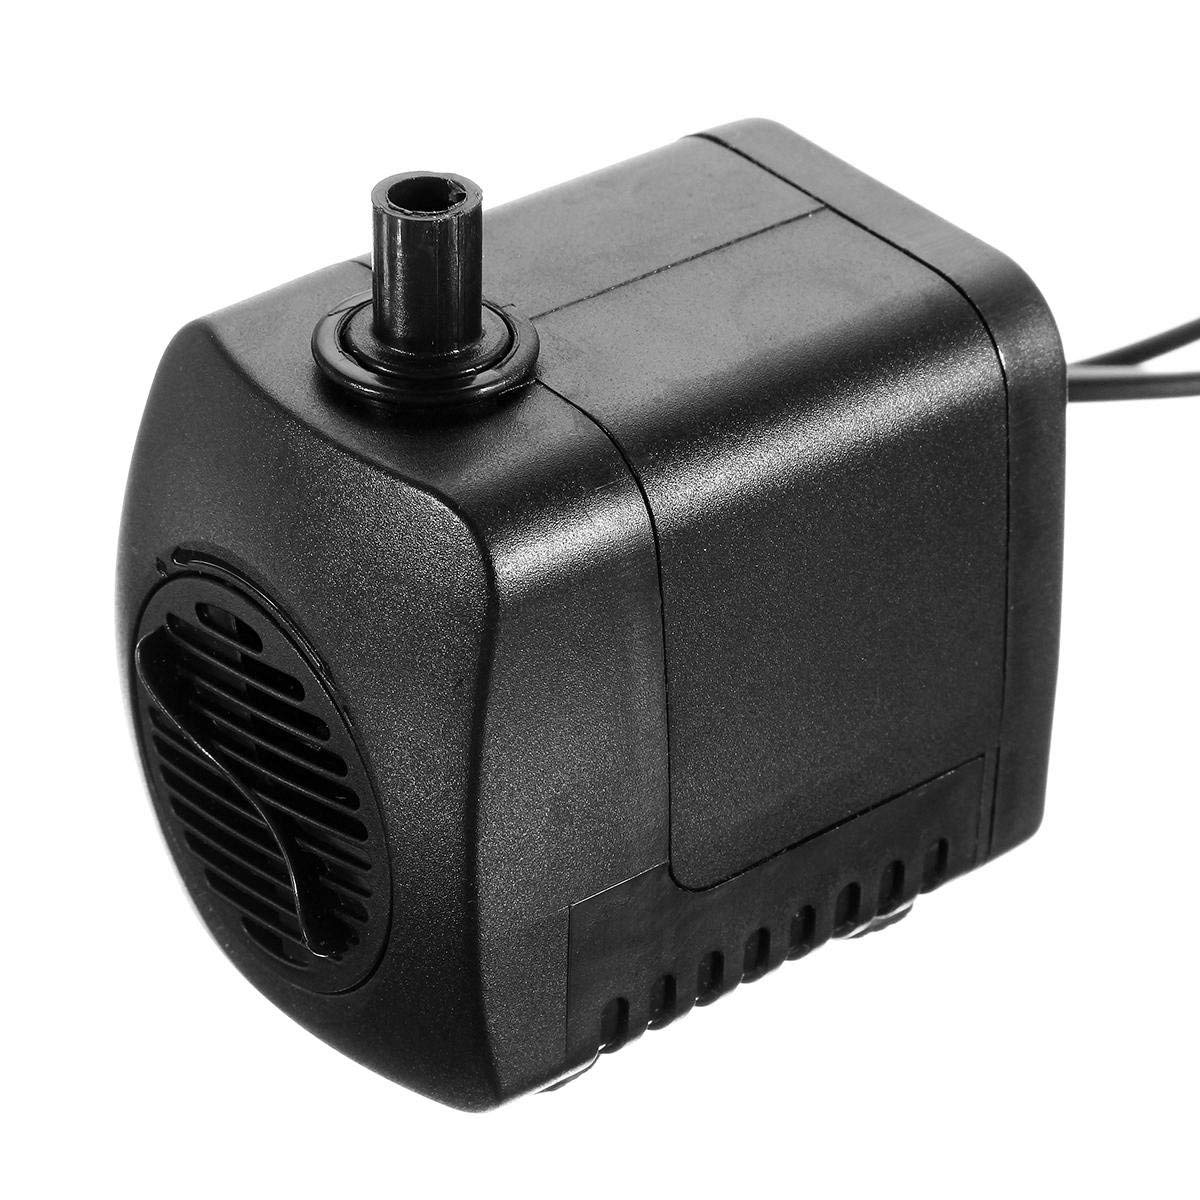 220V 800L/H Submersible Pump Aquarium Fountain Pool Water Pump + 12 LED - Electrical Gadgets & Tools Electrical Pump & Valve - 1pc Digital Soldering Iron Station, 1pc T12 handle, 1pc T12-K tip